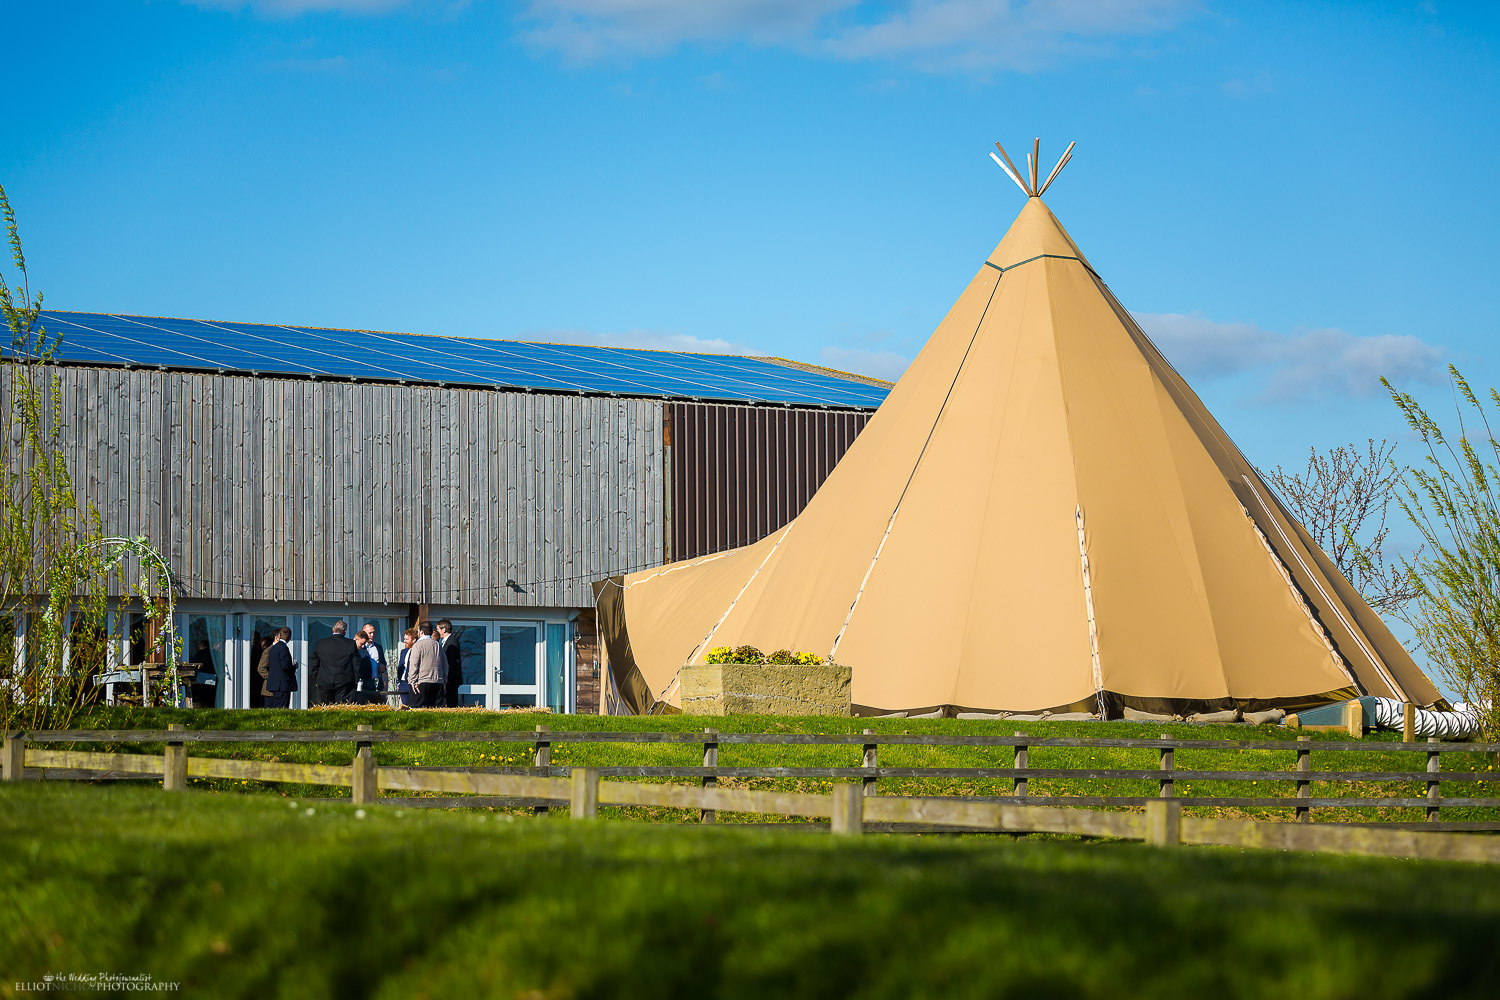 Guests next to Tipi at Vallum Farm, Newcastle Upon Tyne. Photo credit to Elliot Nichol Photography.